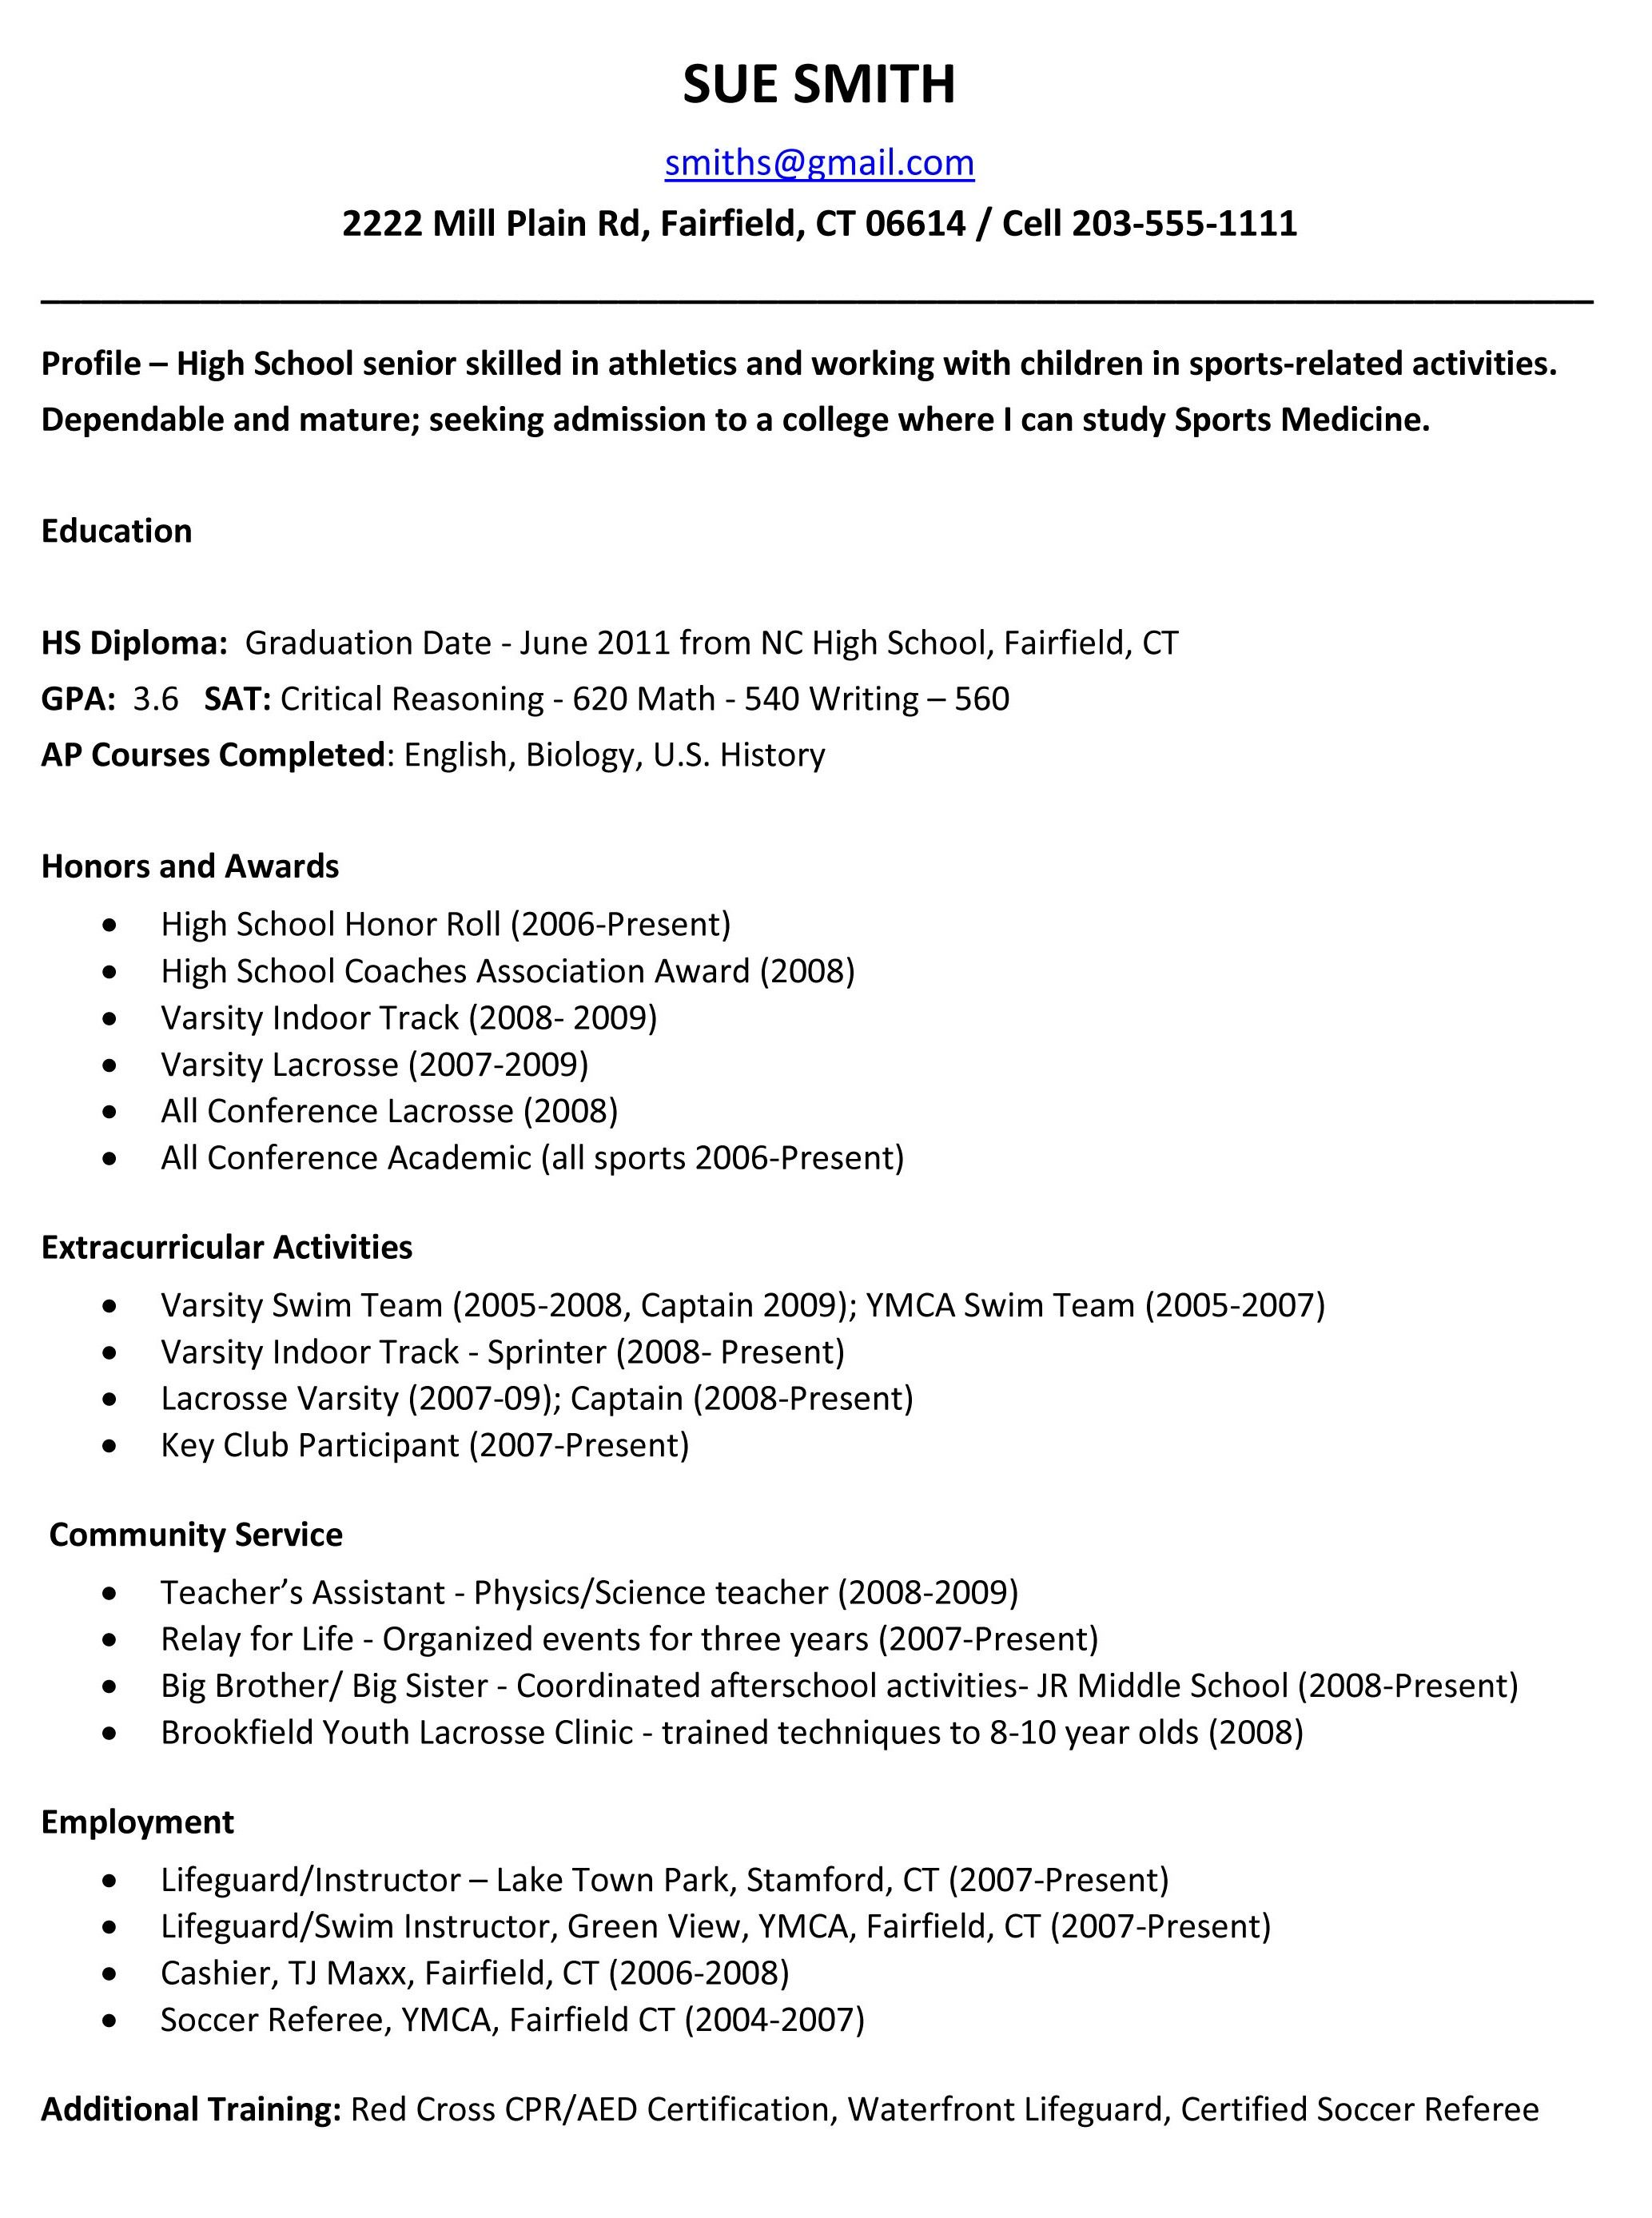 Example resume for high school students for college for Sample resume for high school students applying for scholarships